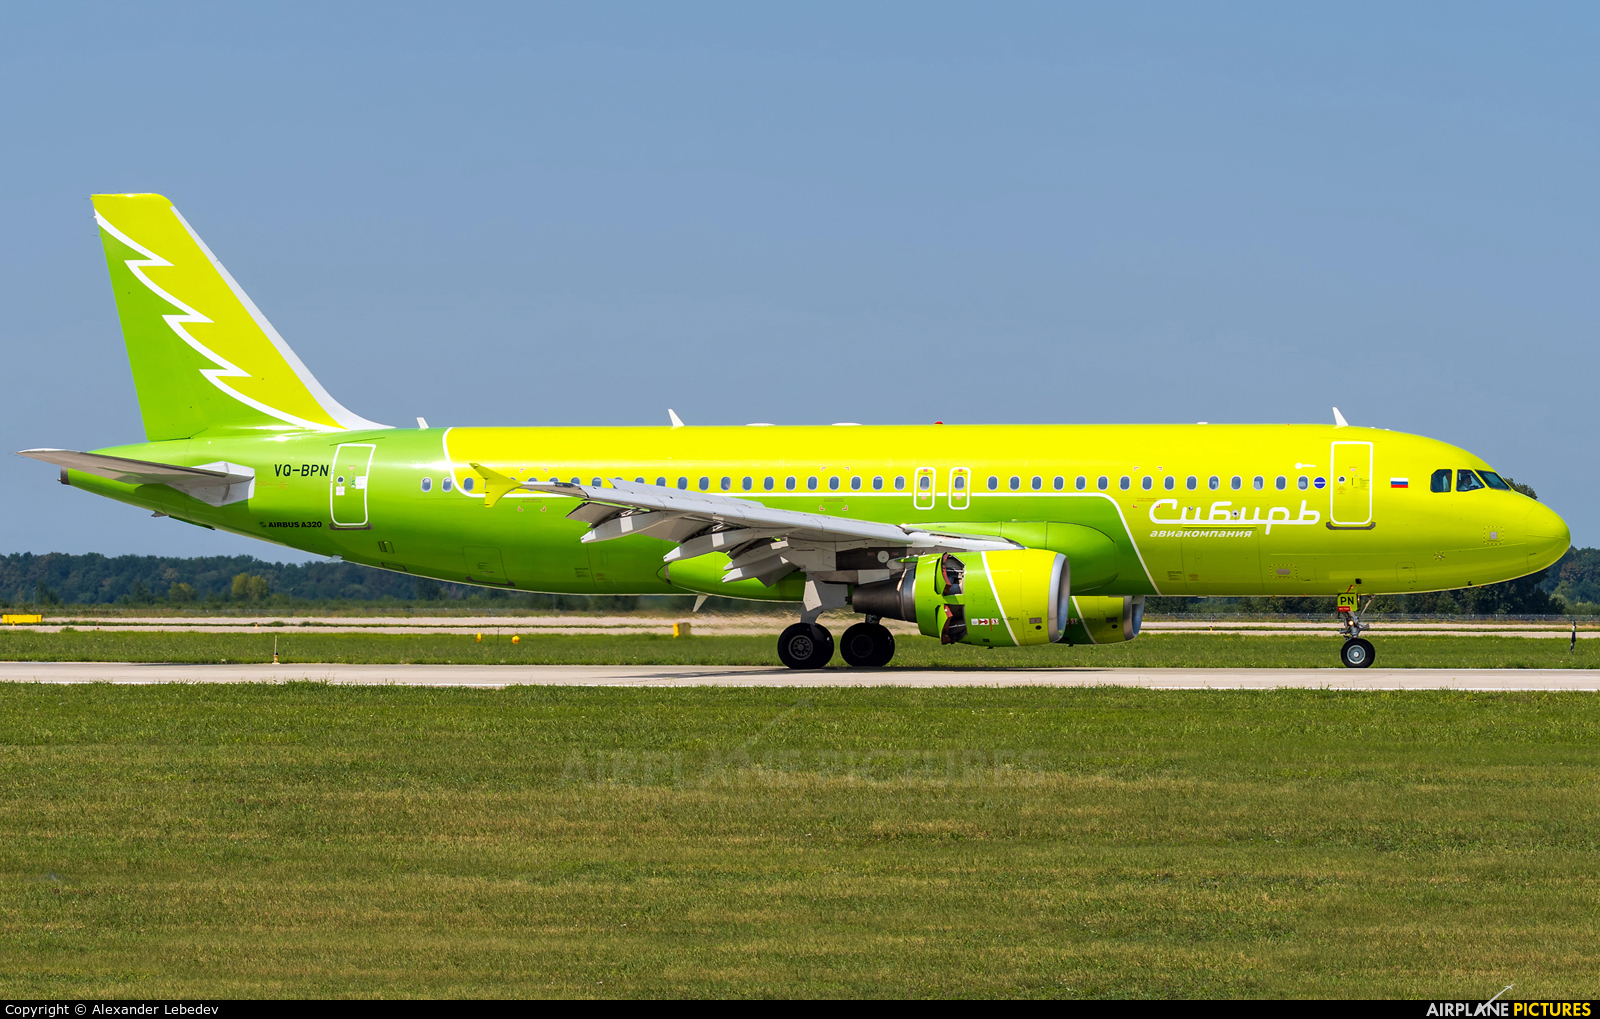 S7 Airlines VQ-BPN aircraft at Krasnodar